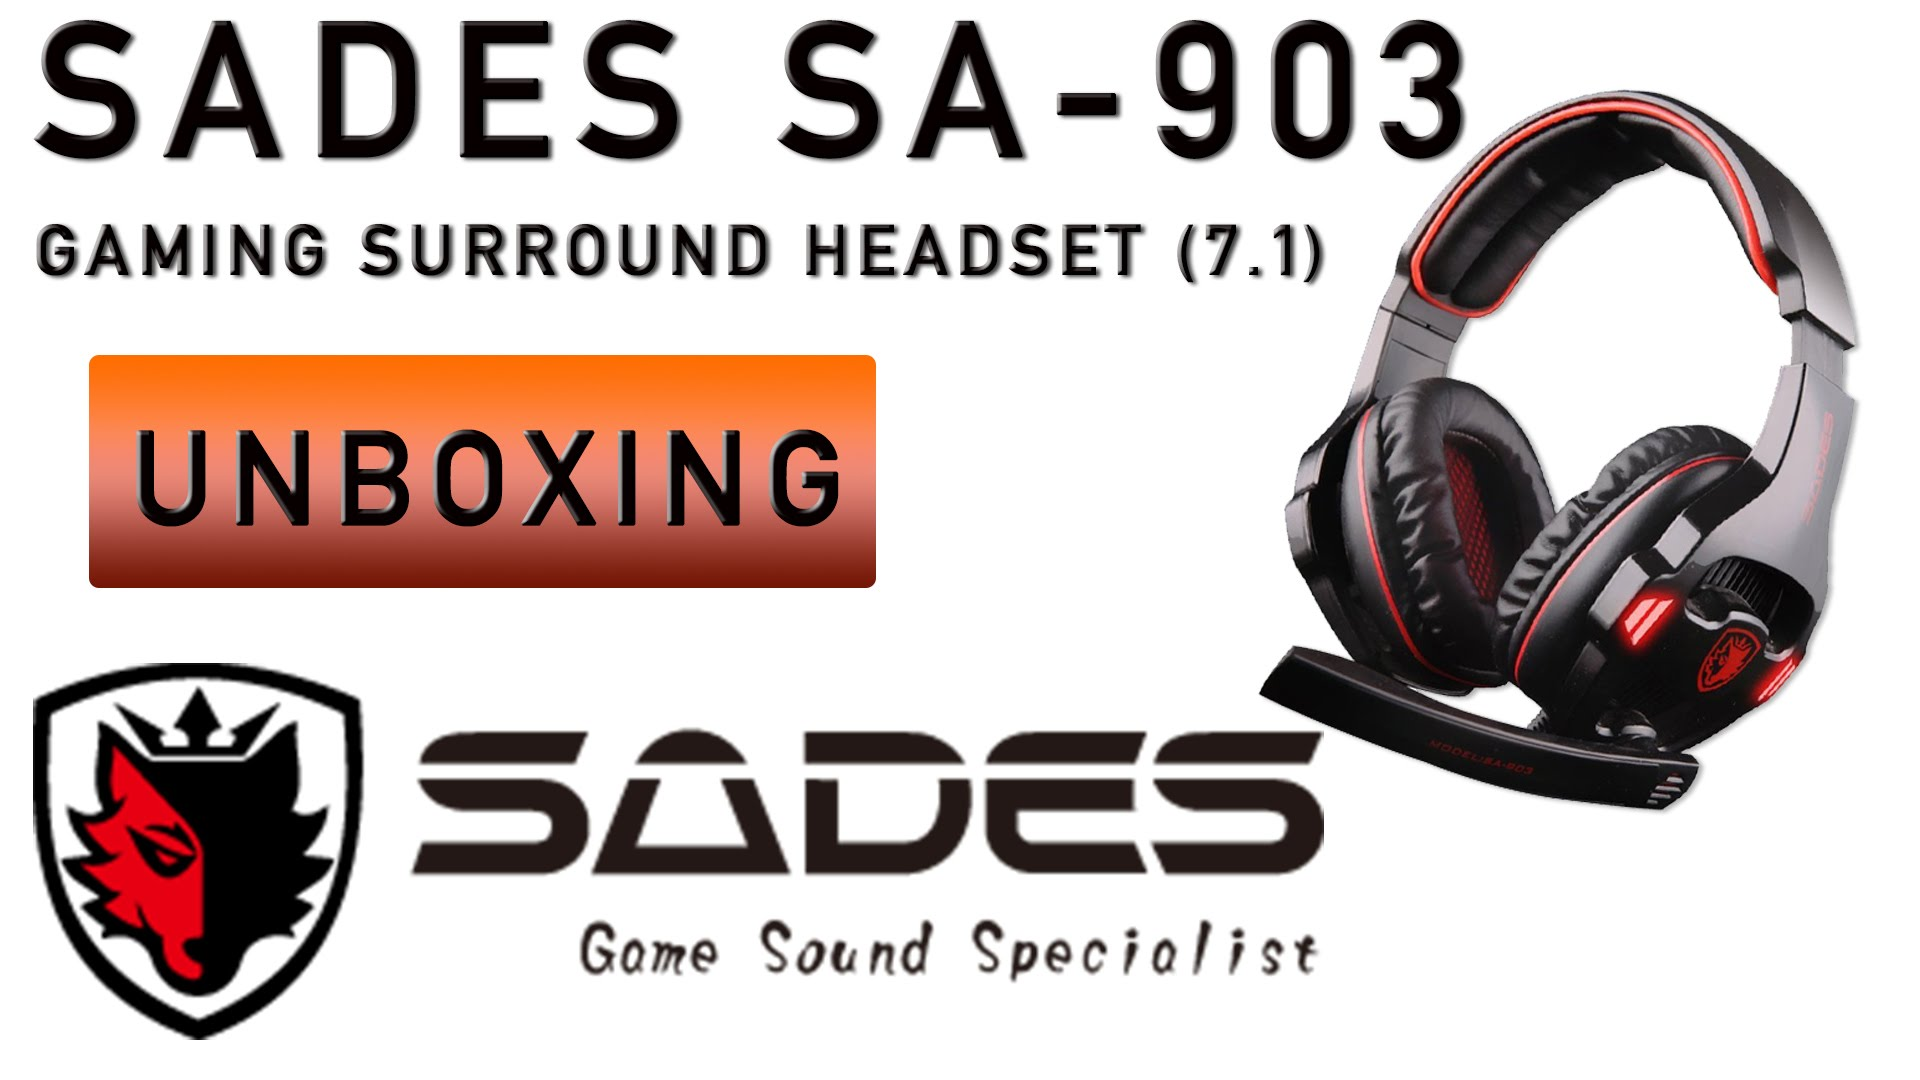 Top 10 Best Sades Gaming Headset Driver Windows 10 Comparison